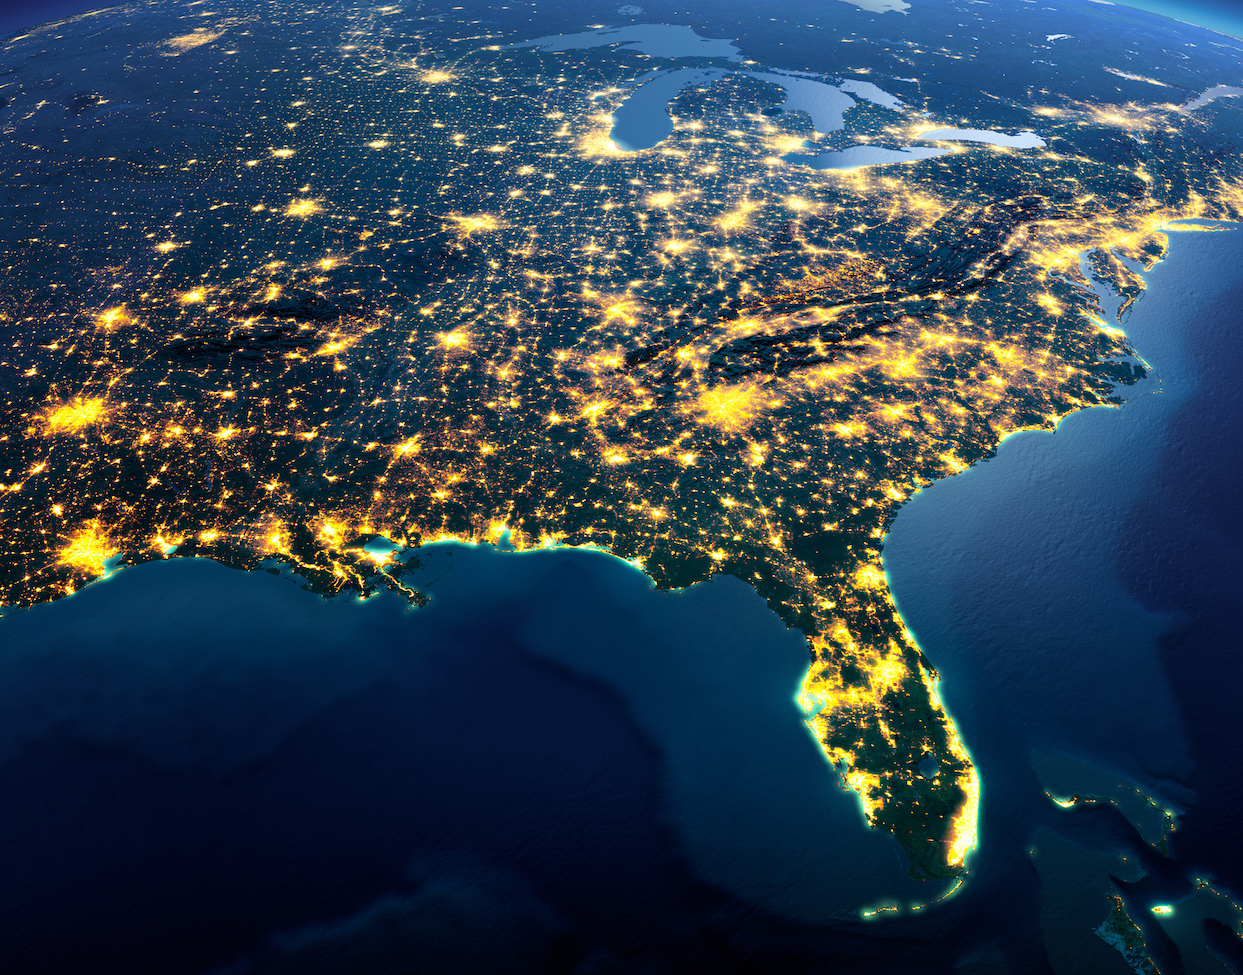 Sea-level rise may impact a great number of archaeological sites, cemeteries, and landscapes in the southeastern United States.